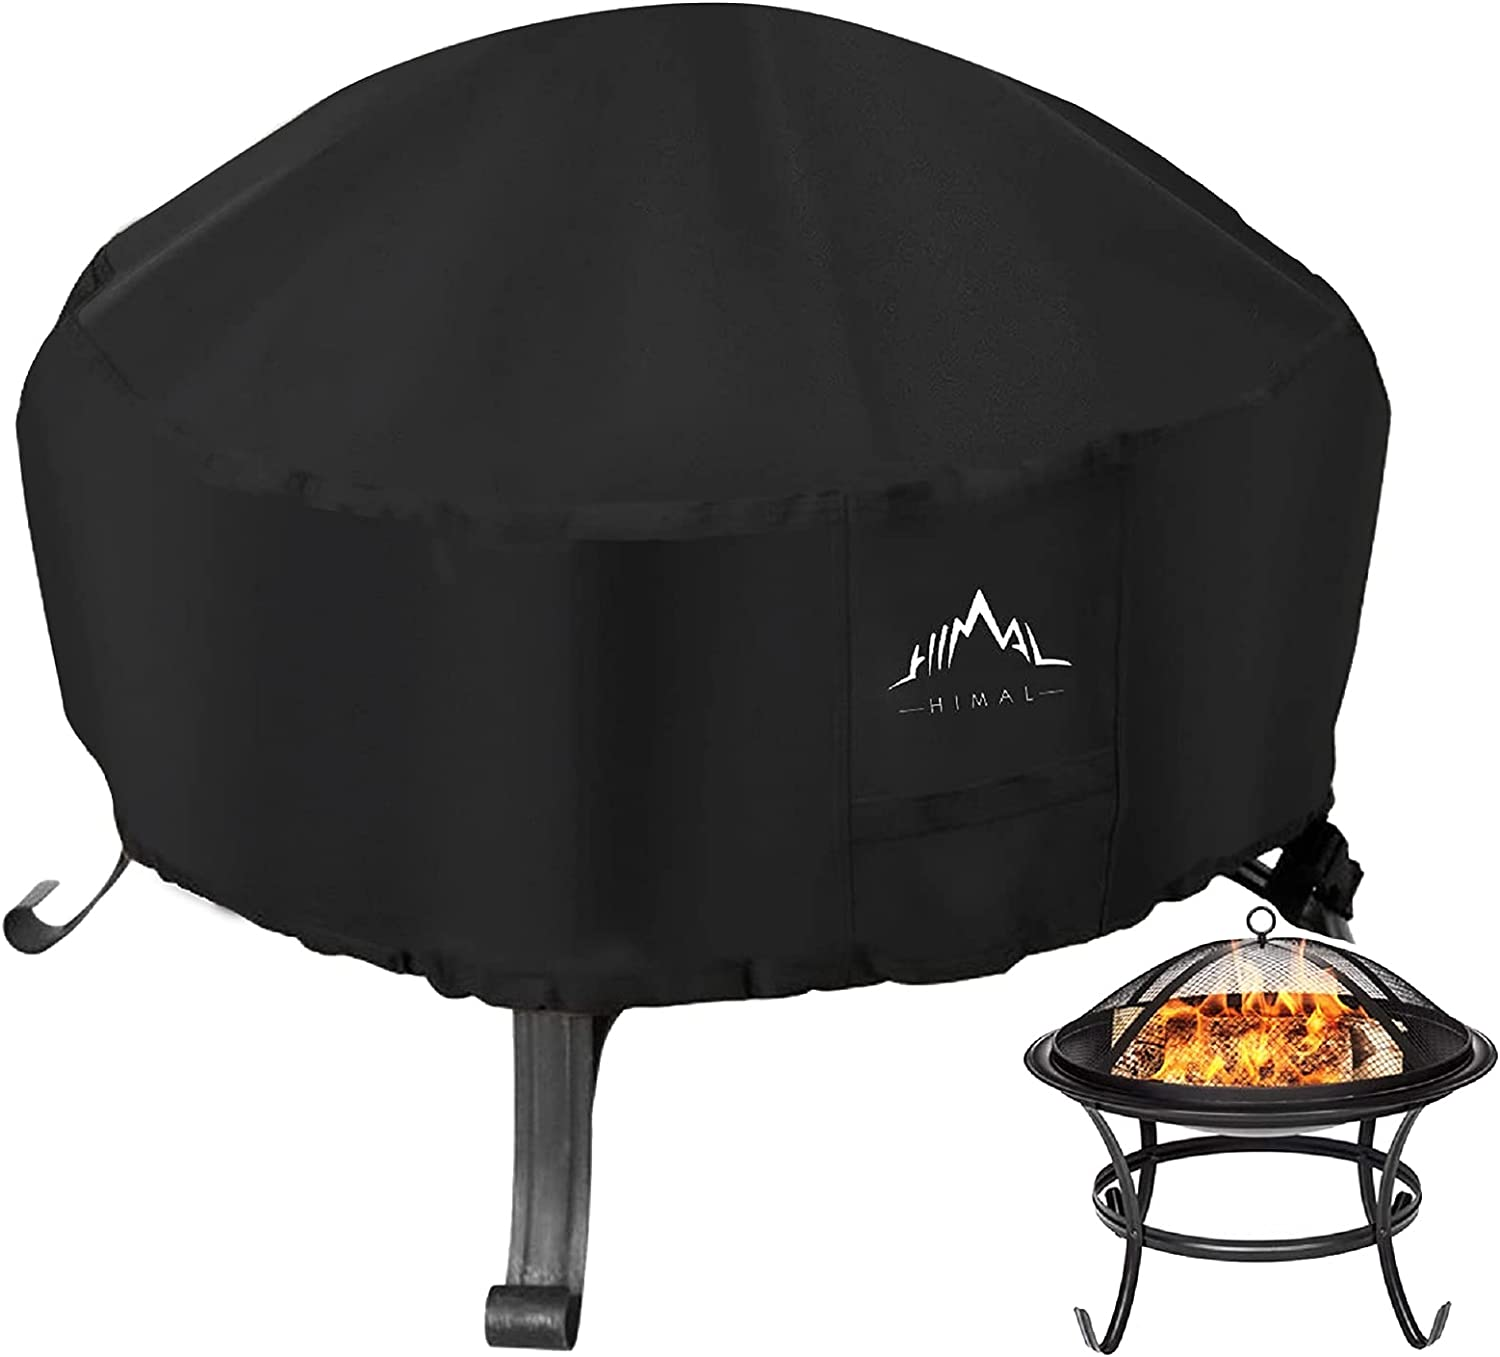 Himal Courier shipping free Outdoors Fire Max 44% OFF Pit Cover- 600D Waterproof Duty Heavy Polyst